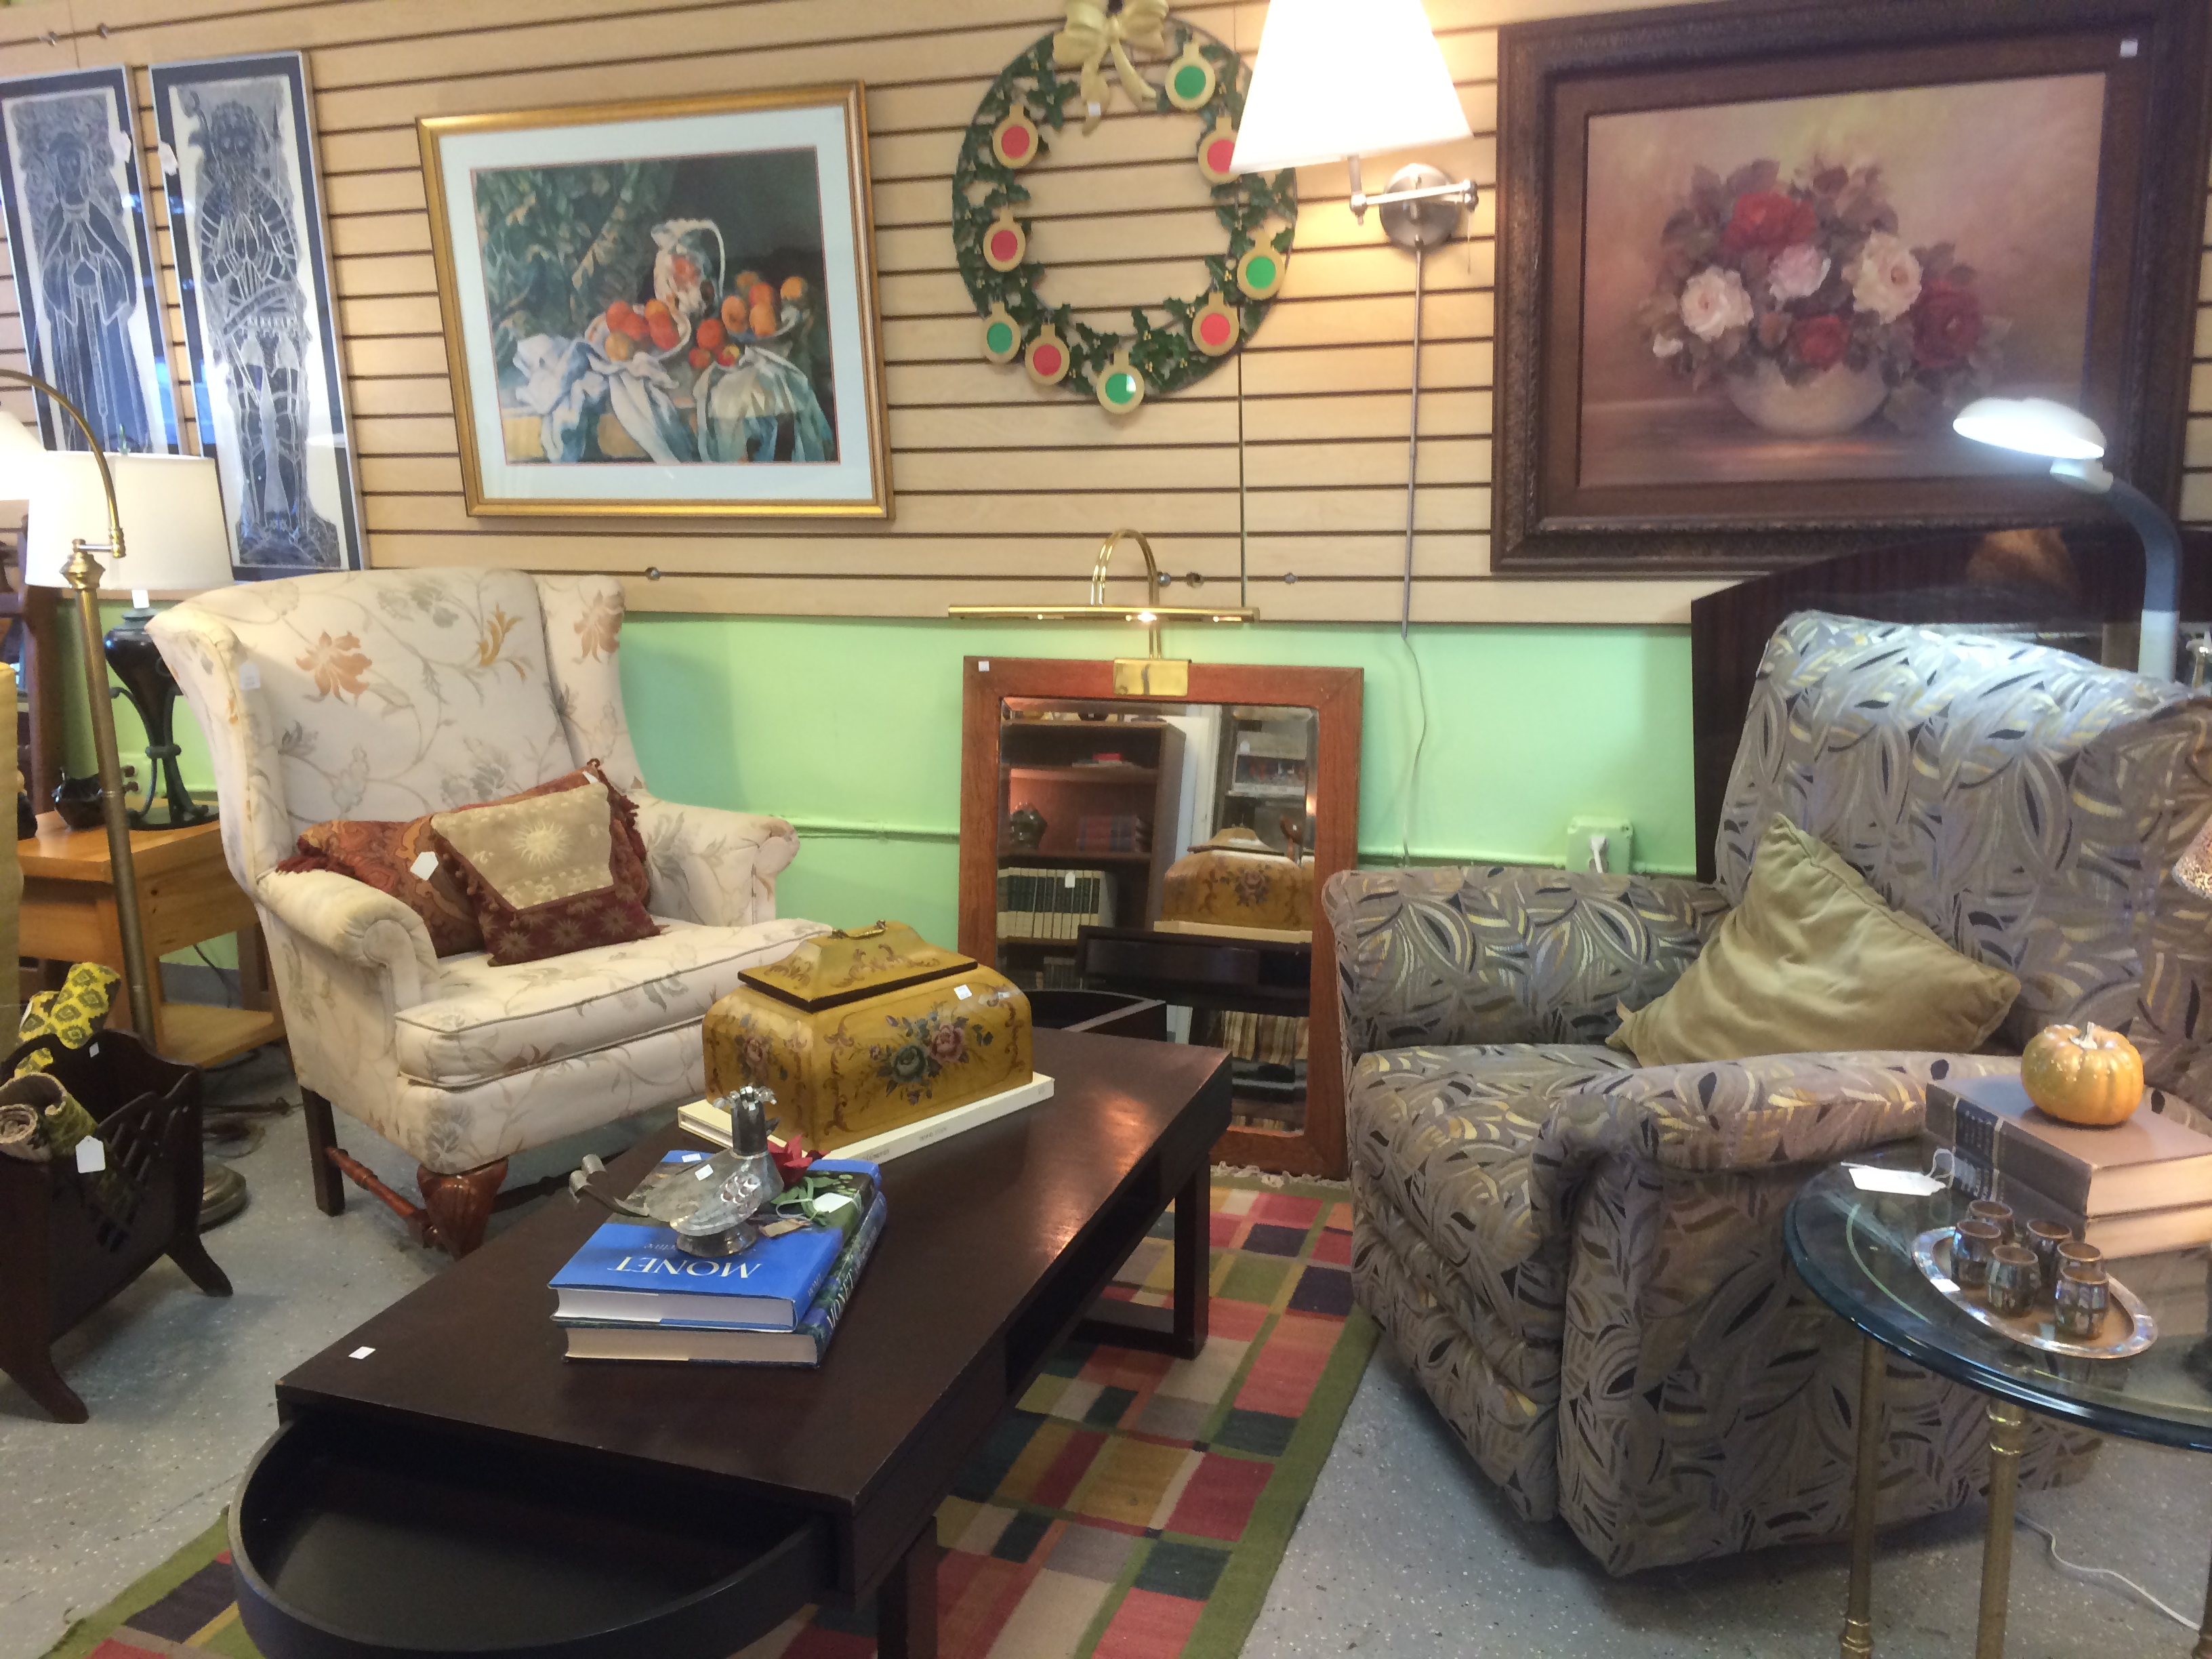 new up pick where charitable hope donation pa geo furniture donate to center near